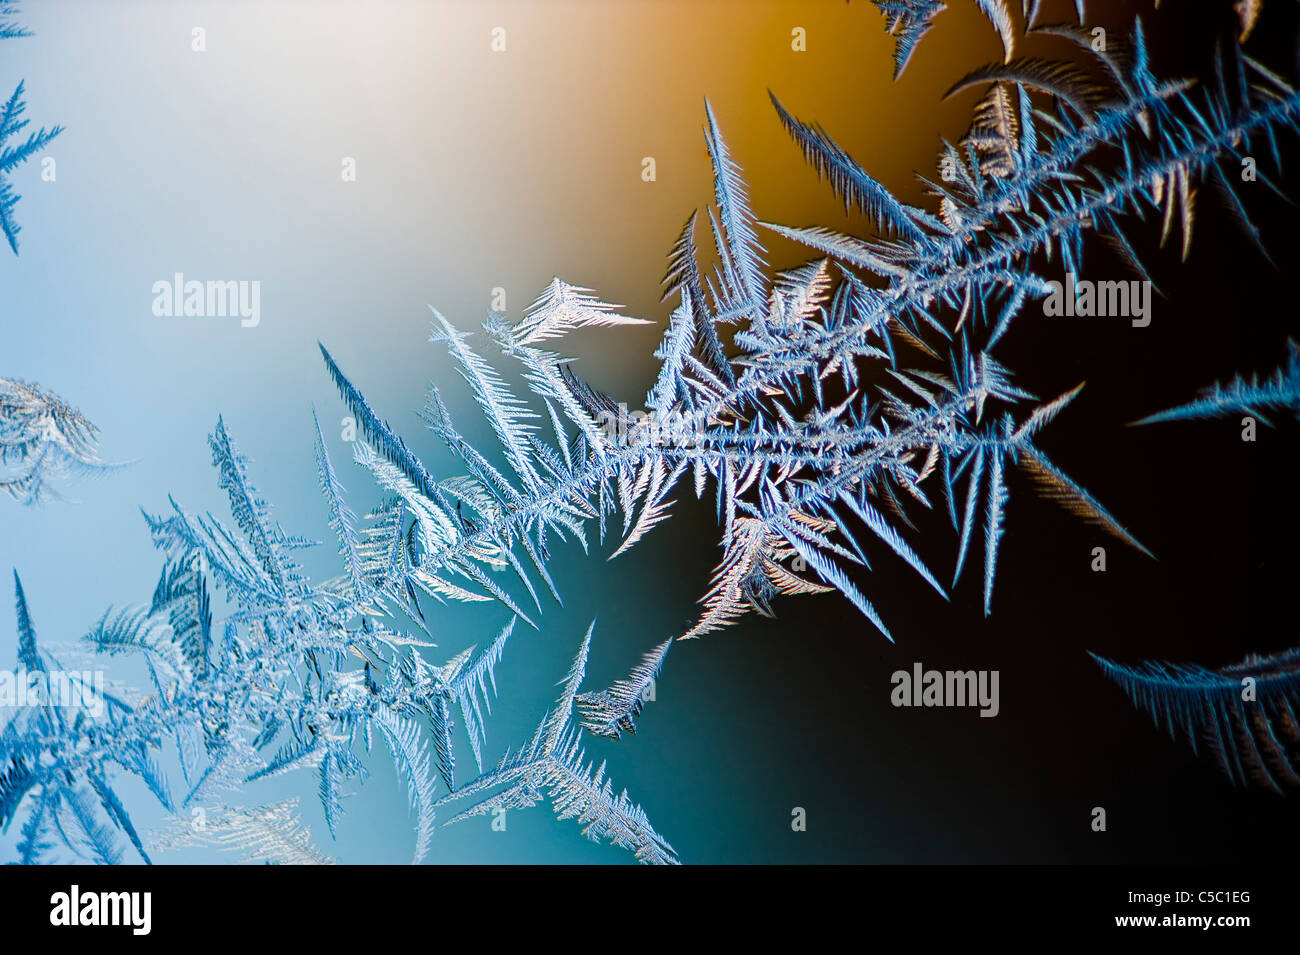 Close-up of ice crystals against blurred background - Stock Image